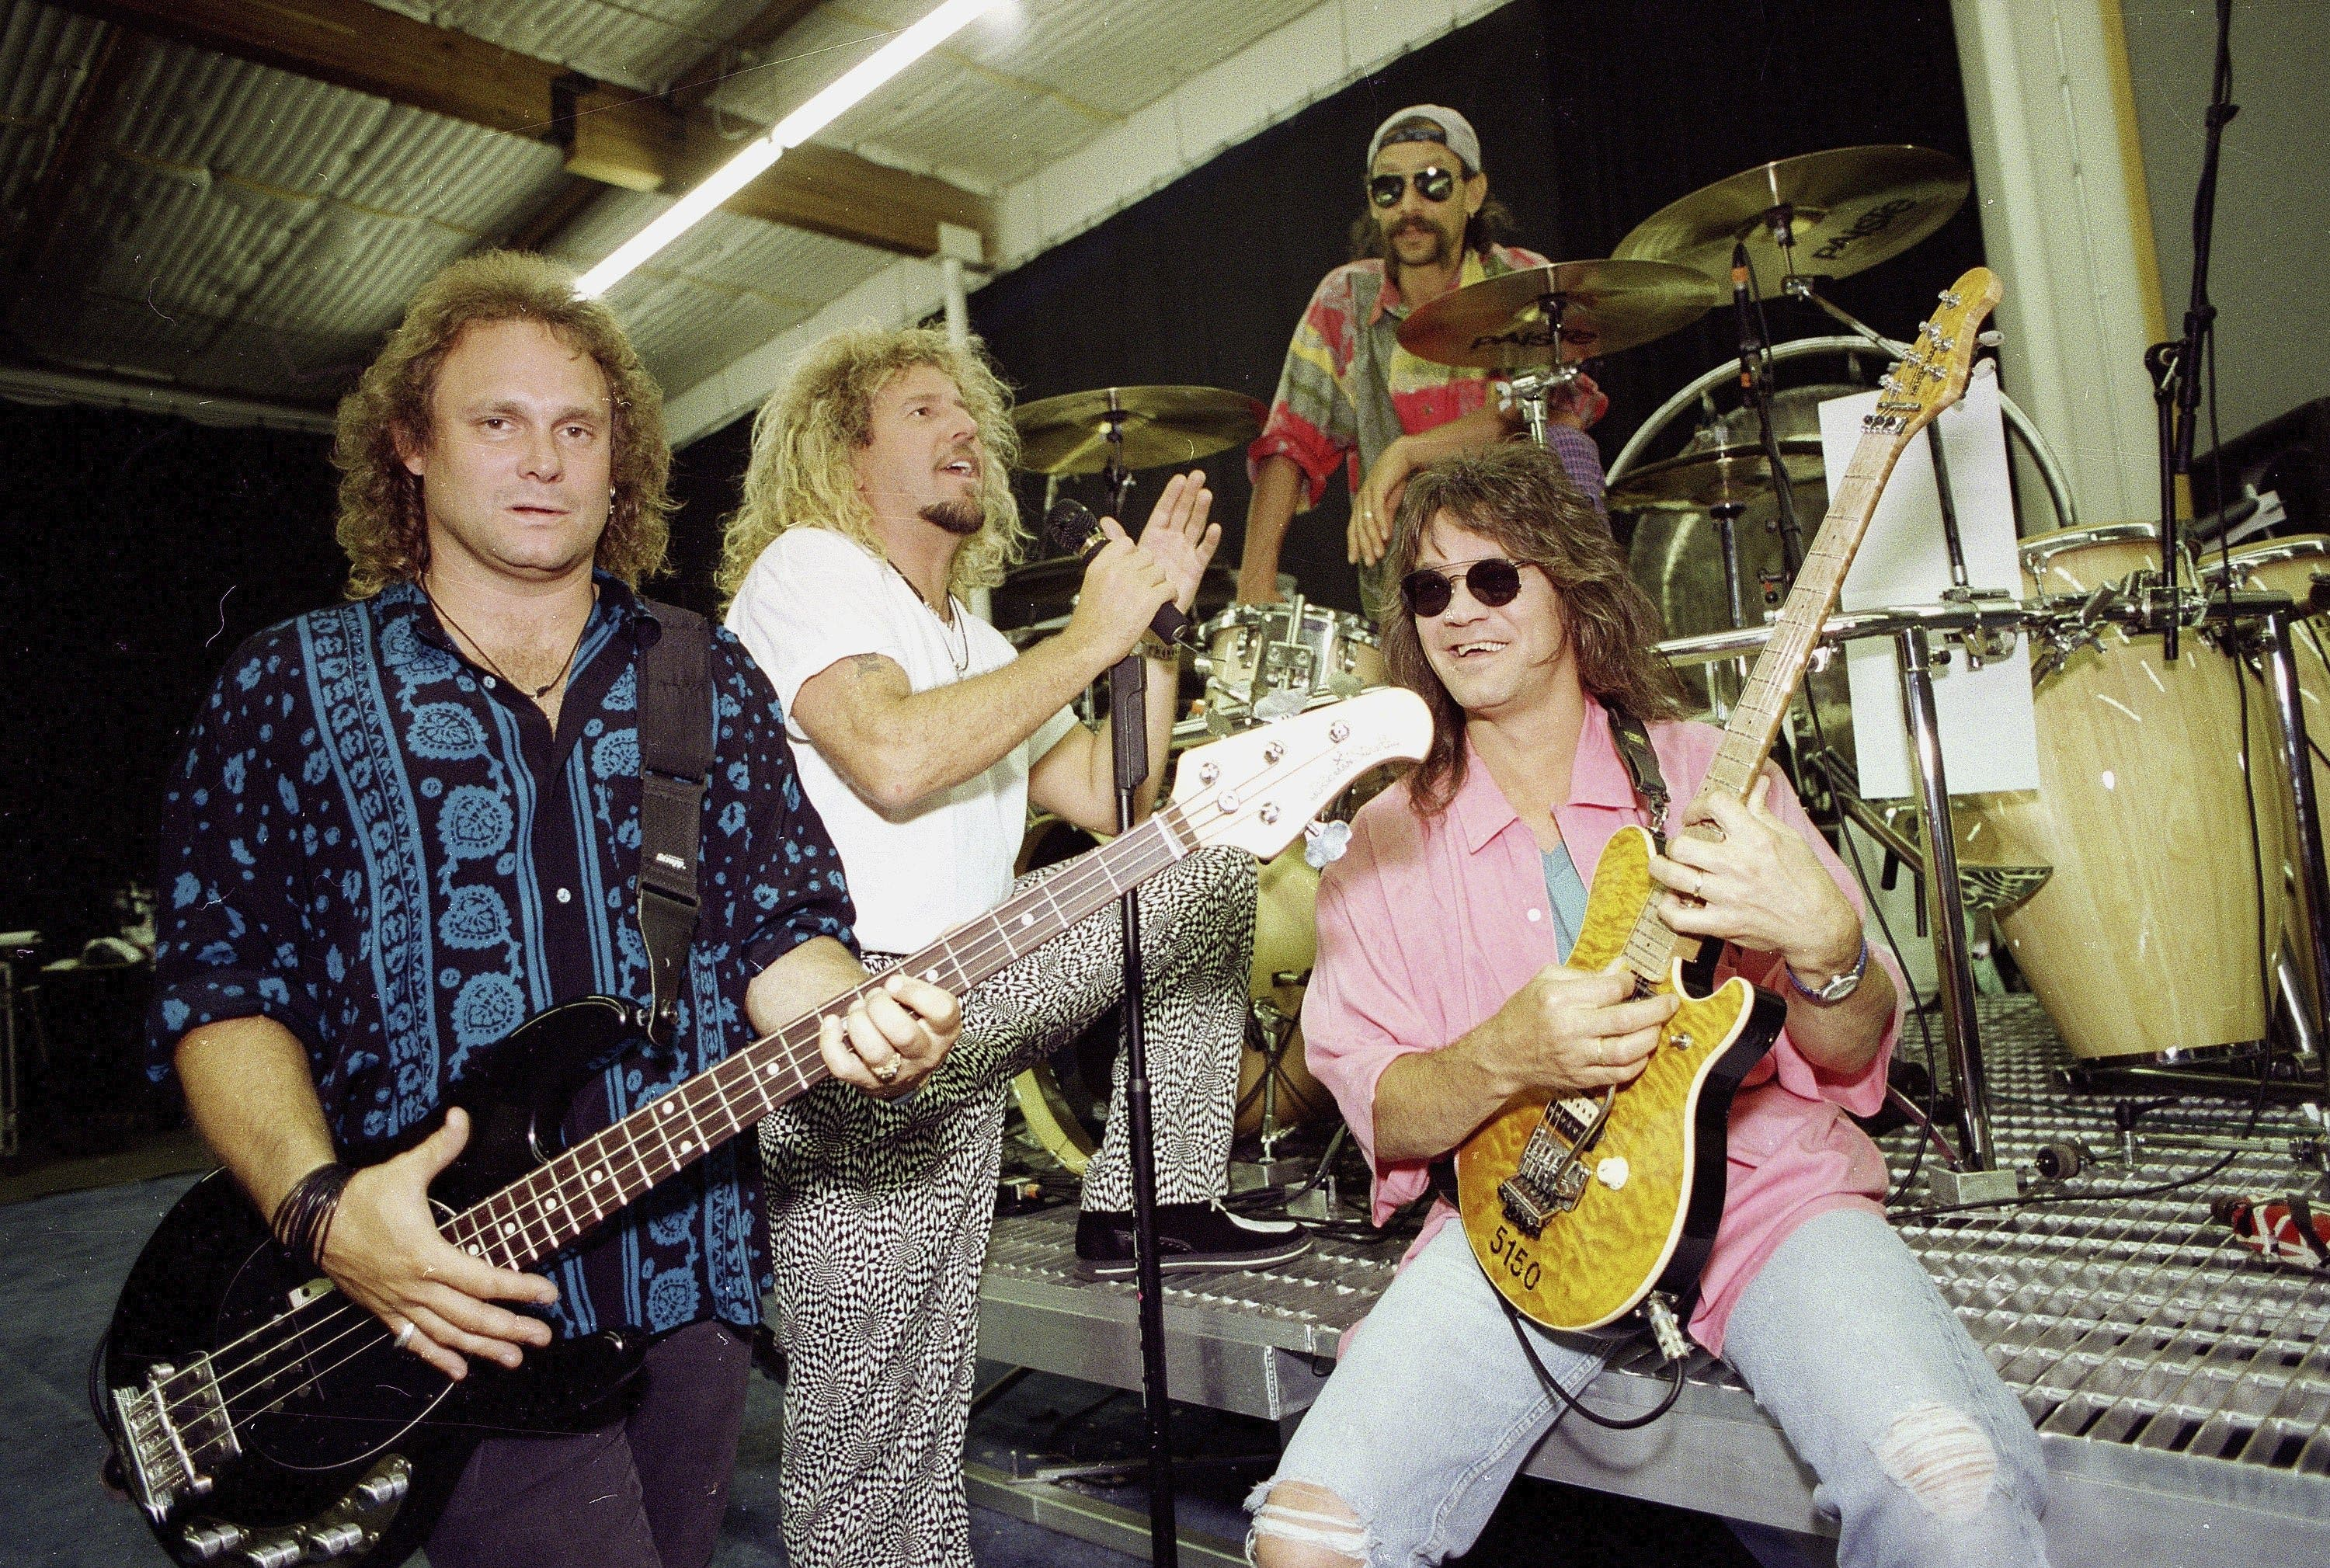 Van Halen, das sind (von links): Bassgitarrist Michael Anthony, Leadsänger Sammy Hagar, Schlagzeuger Alex Van Halen, Leadgitarrist Eddie Van Halen. Van Halens Debütalbum war 1978 erschienen, zum wohl größten Erfolg der Band wurde der Song «Jump» im Jahre 1984.